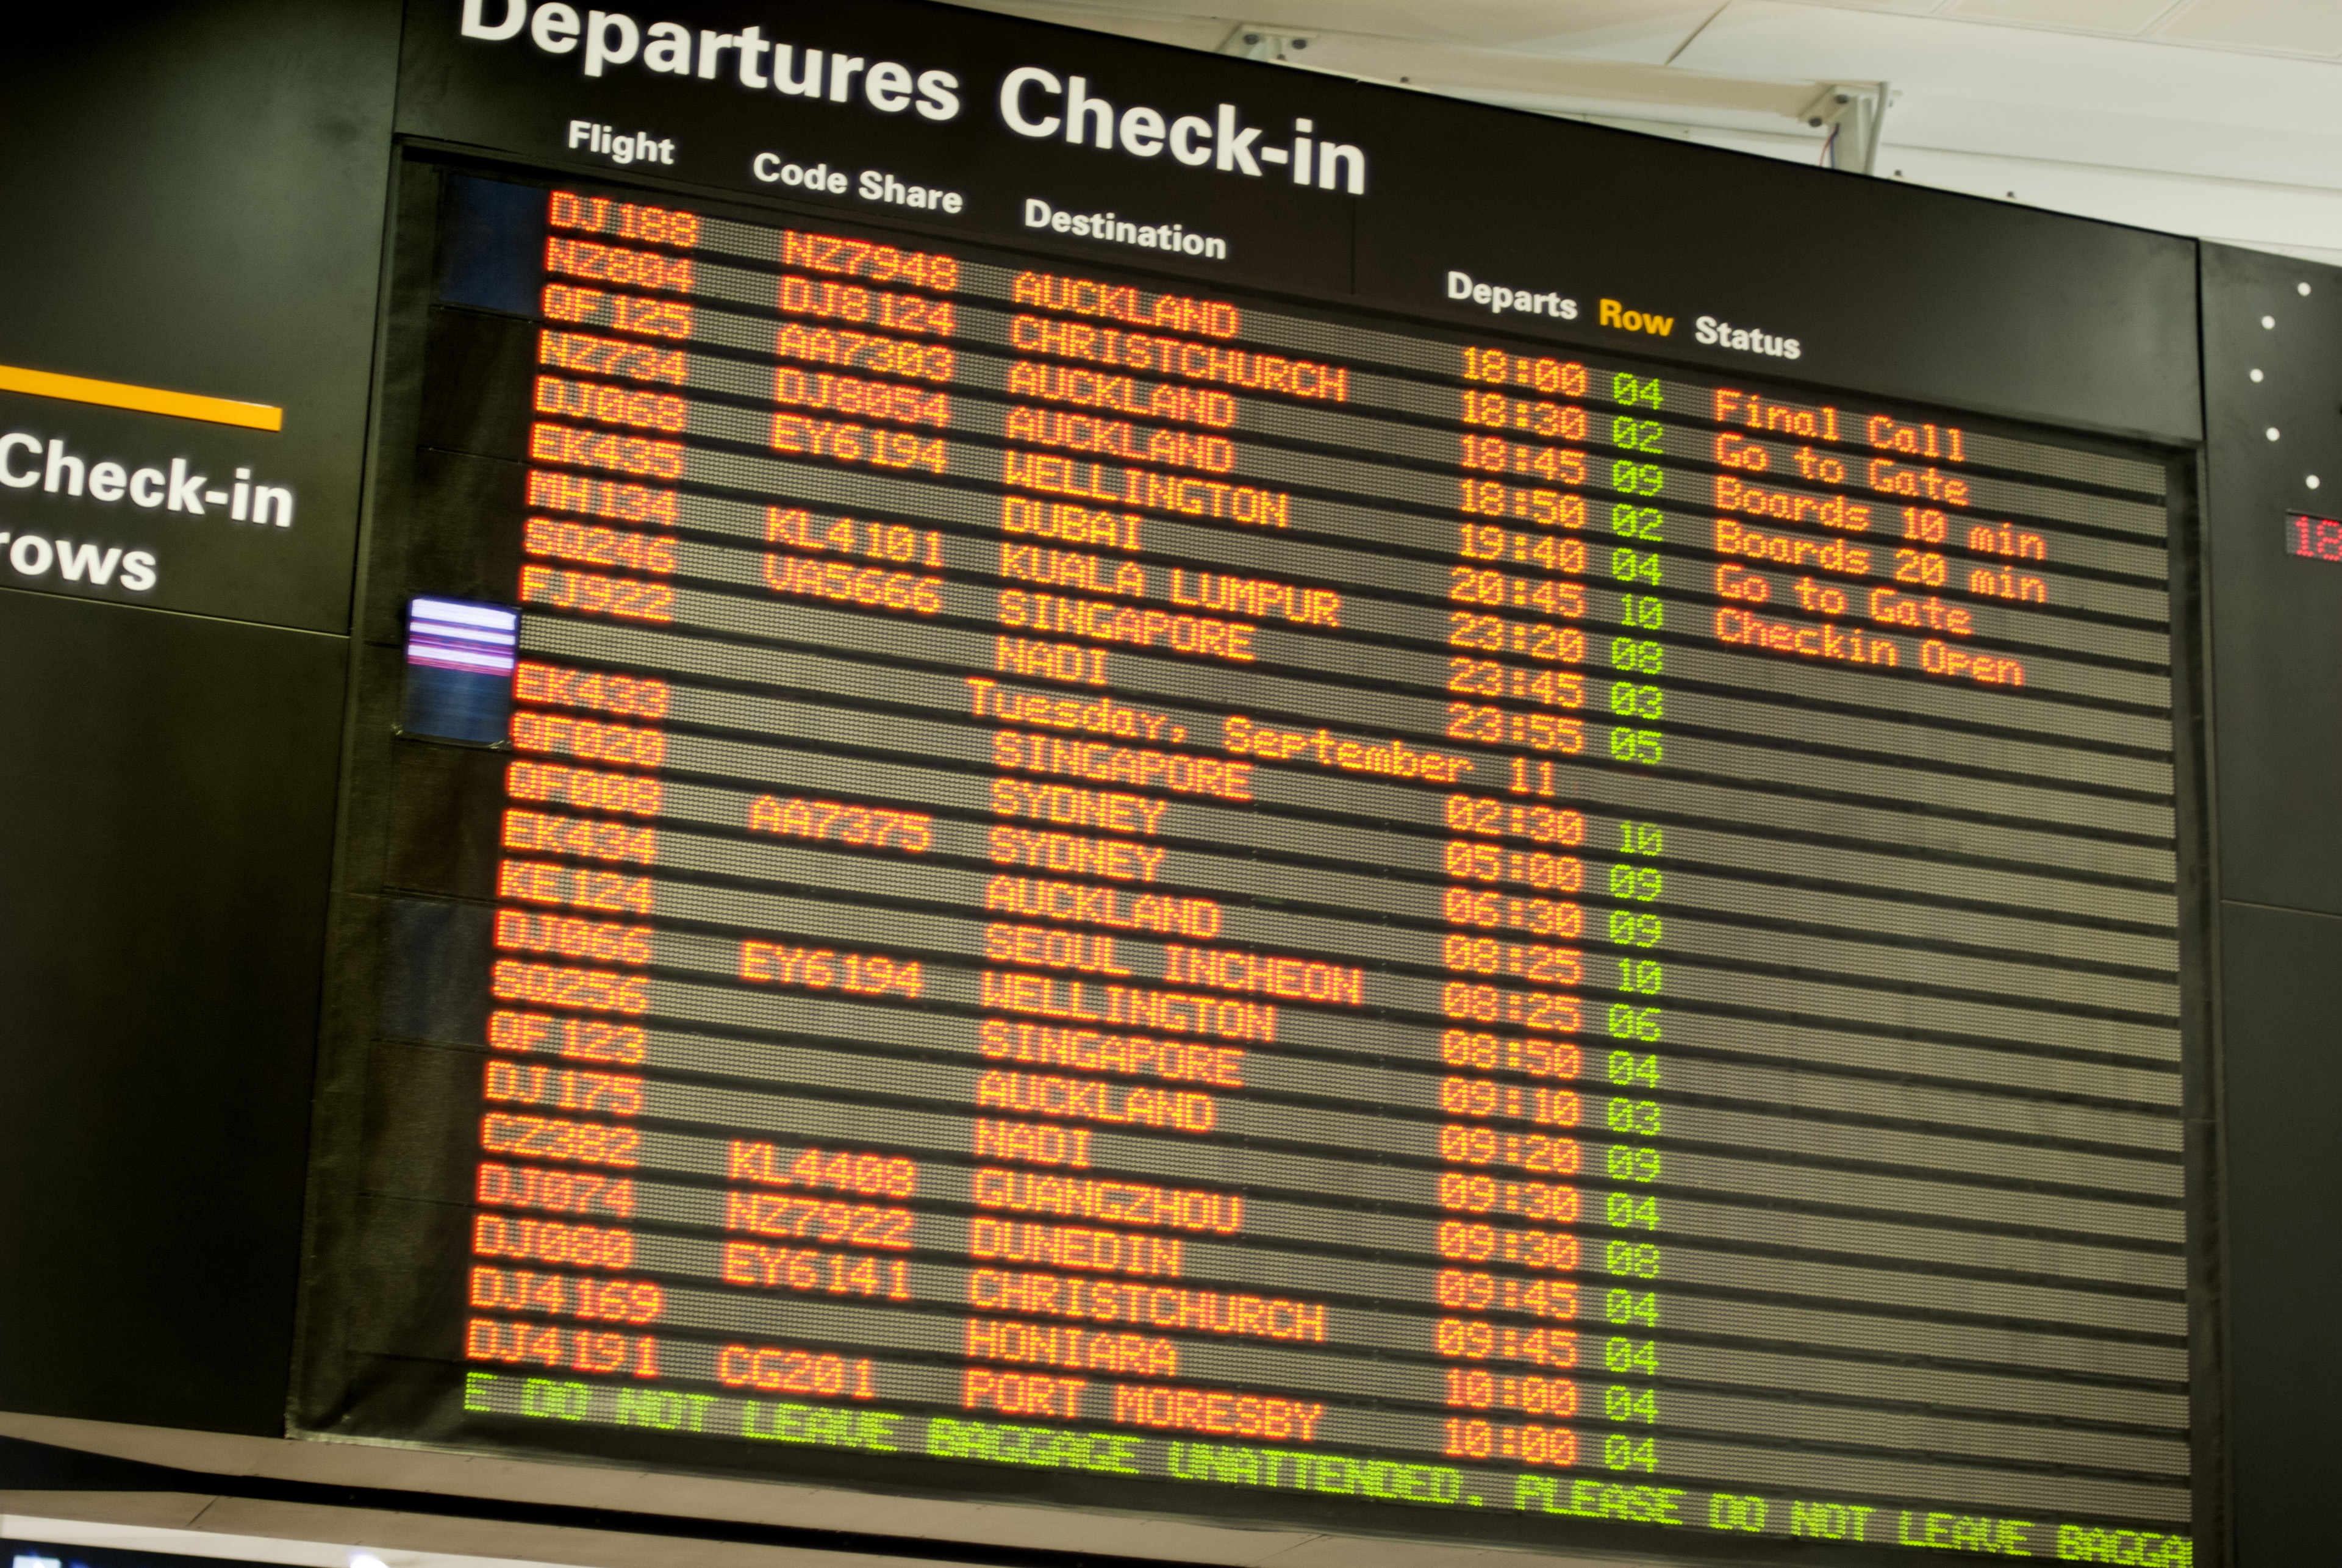 Flight information at the check-in for departures at an airport terminal with a board listing all flight information in a travel concept